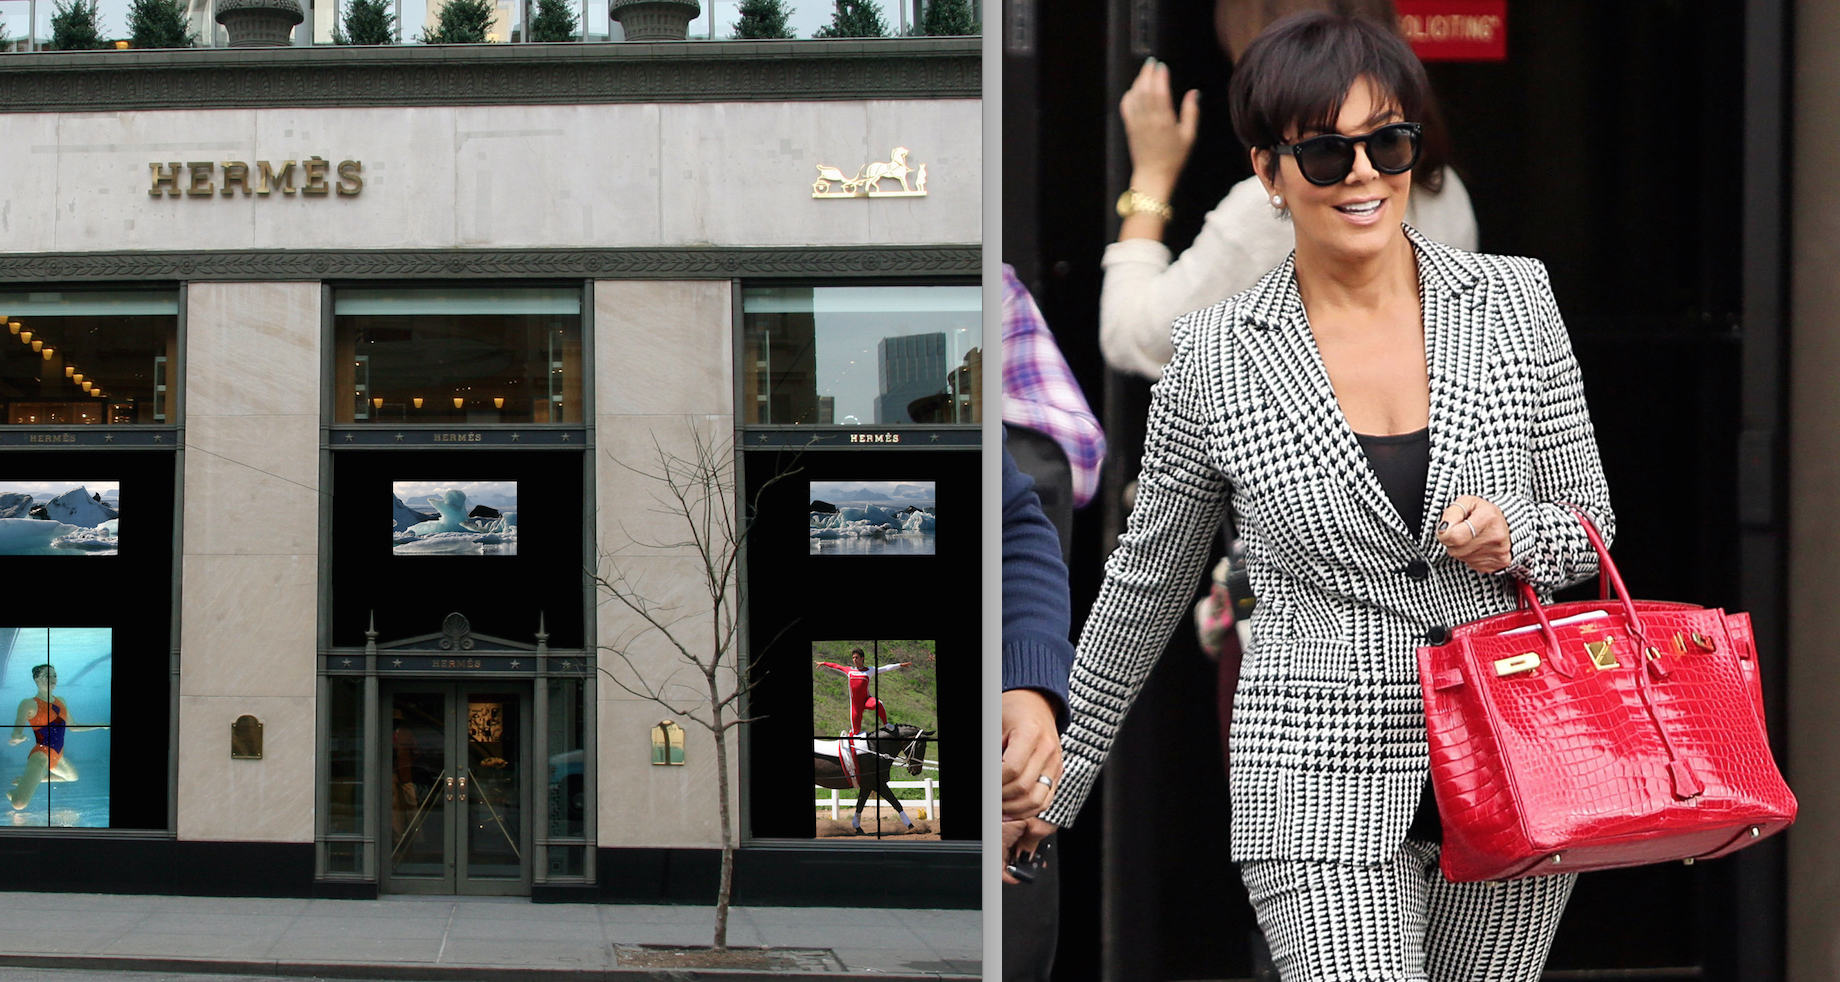 Undercover investigators expose atrocities on alligator farms that reality star kris jenner wears herms purse made from alligator skin photo purseblog buycottarizona